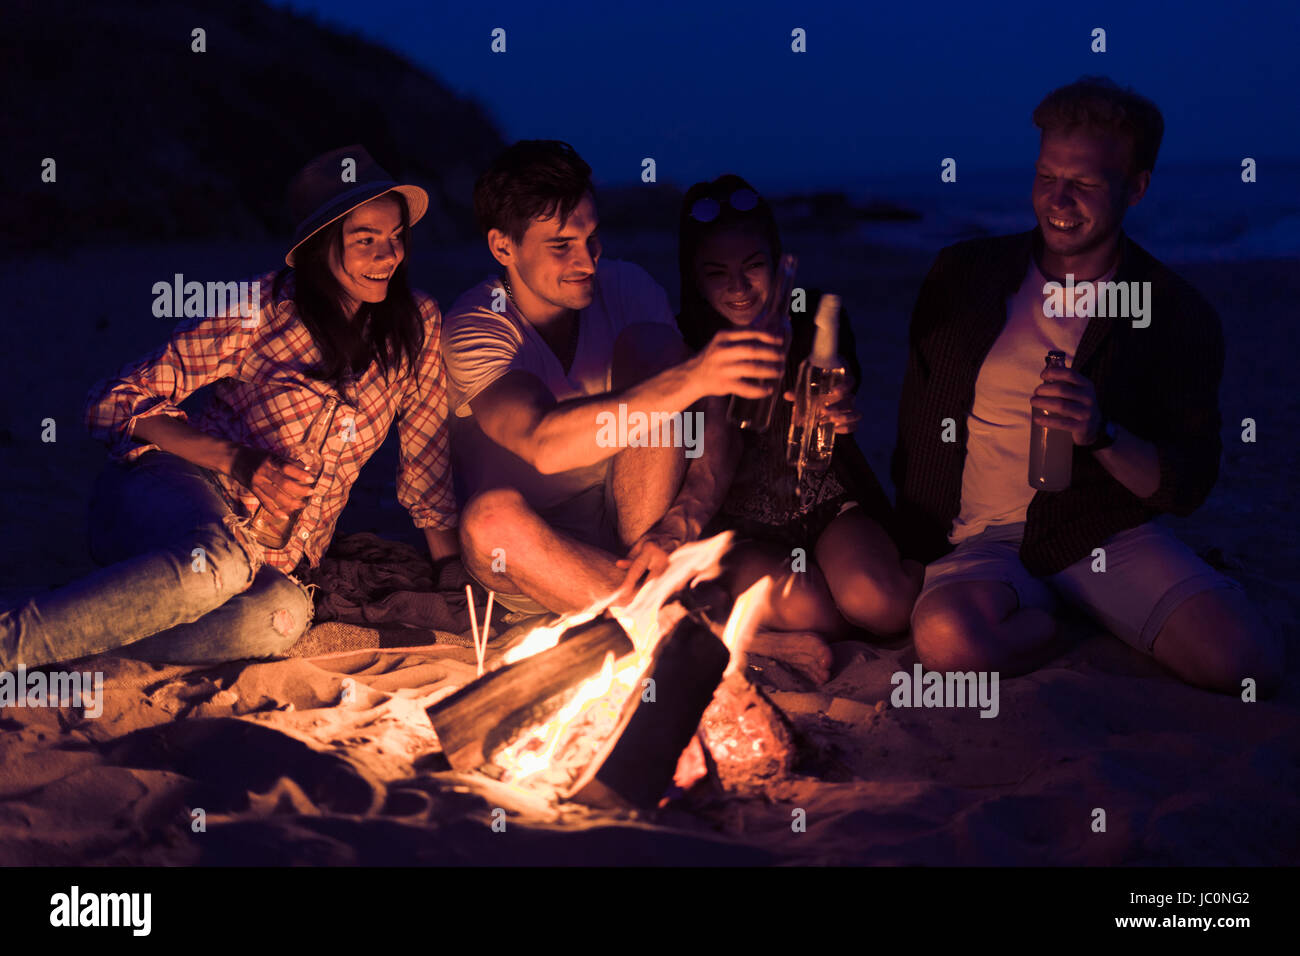 friends sitting on the beach clink glasses near bonfire - Stock Image